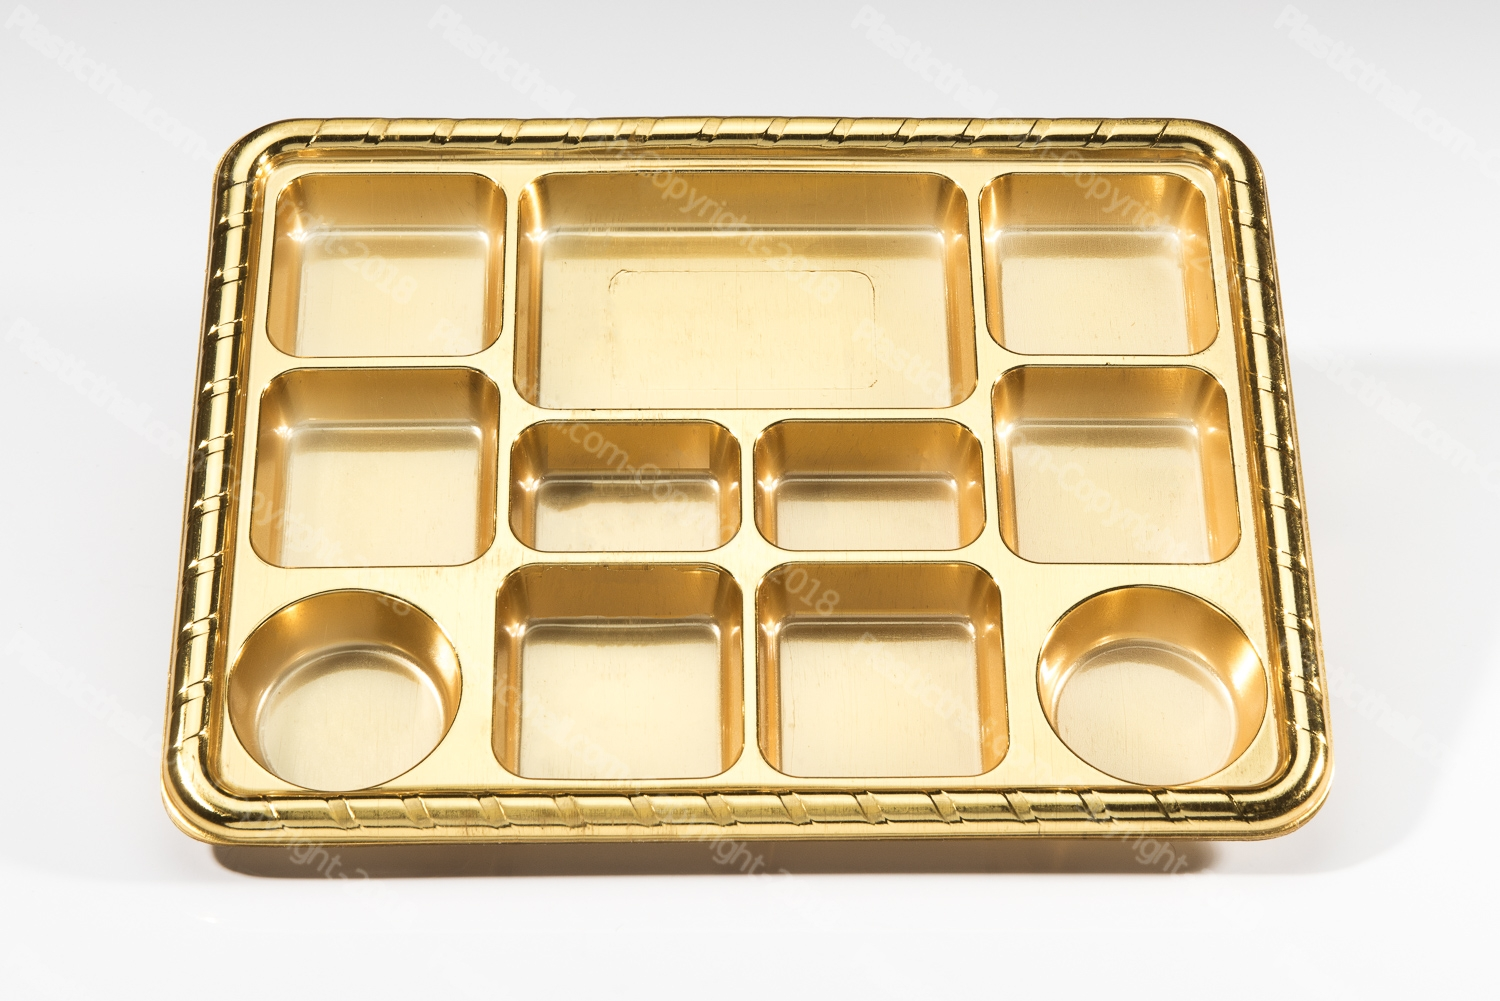 11 compartment disposable gold plastic plate 3